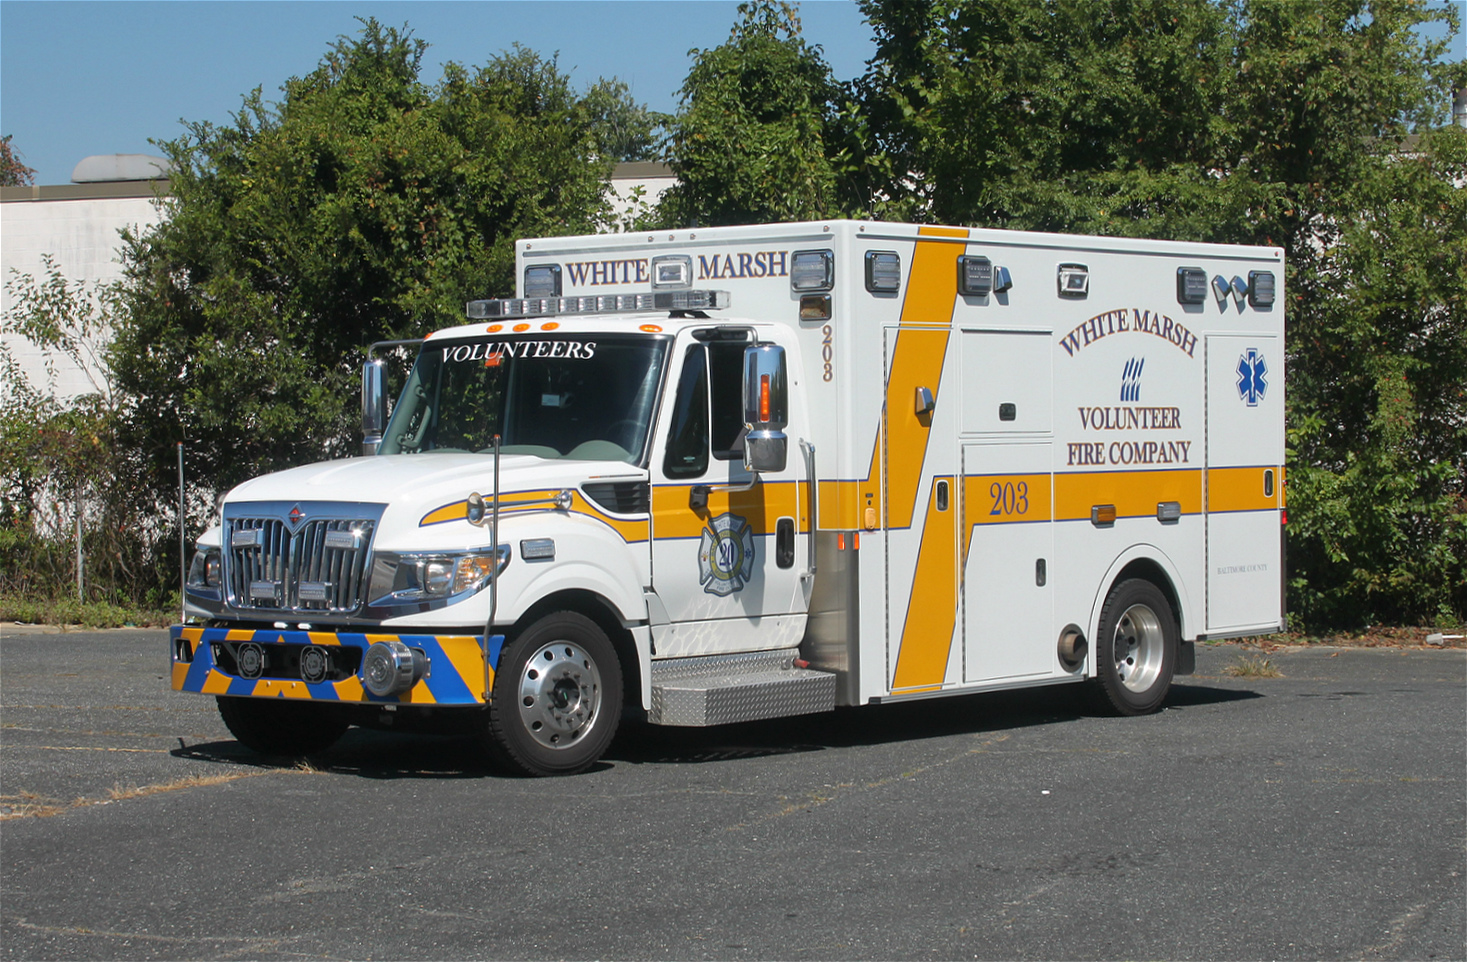 MD, White Marsh Volunteer Fire Company 20